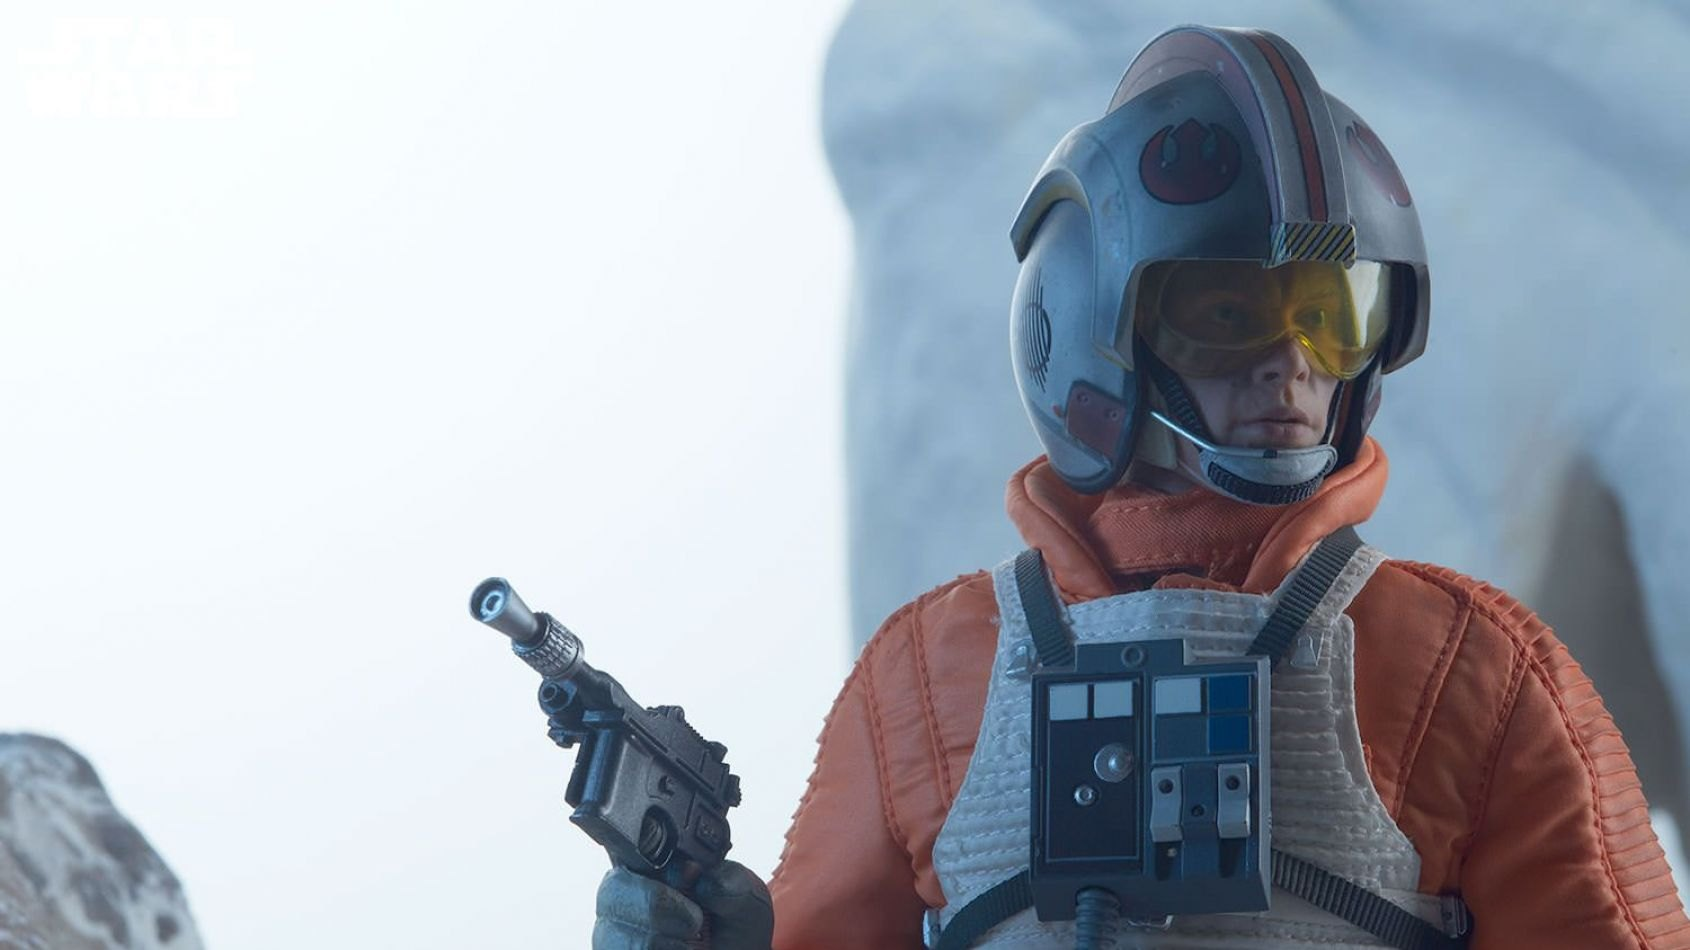 Sideshow : Luke Skywalker en version pilote de snowspeeder